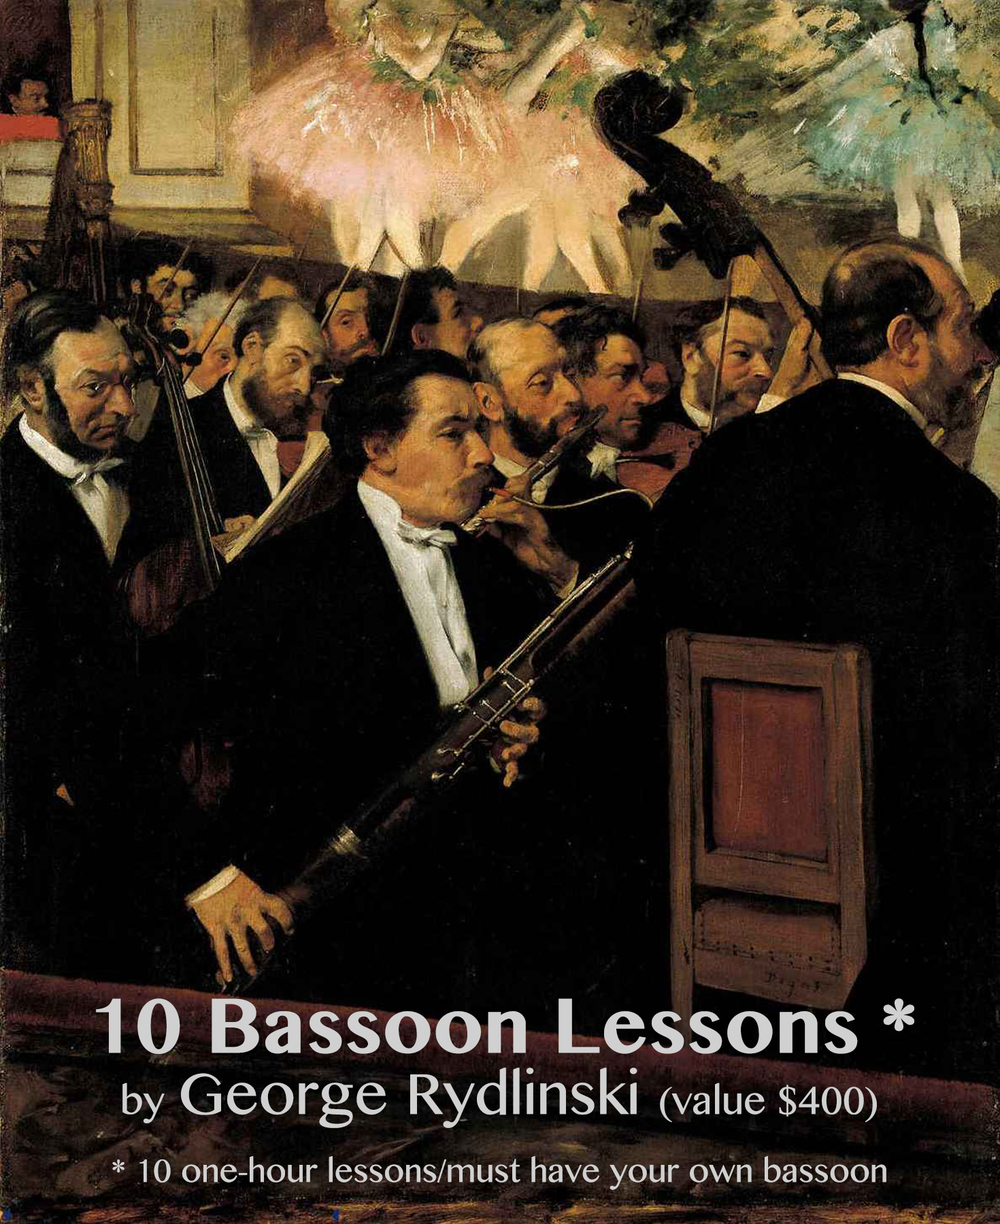 Certificate for ten Bassoon lessons.